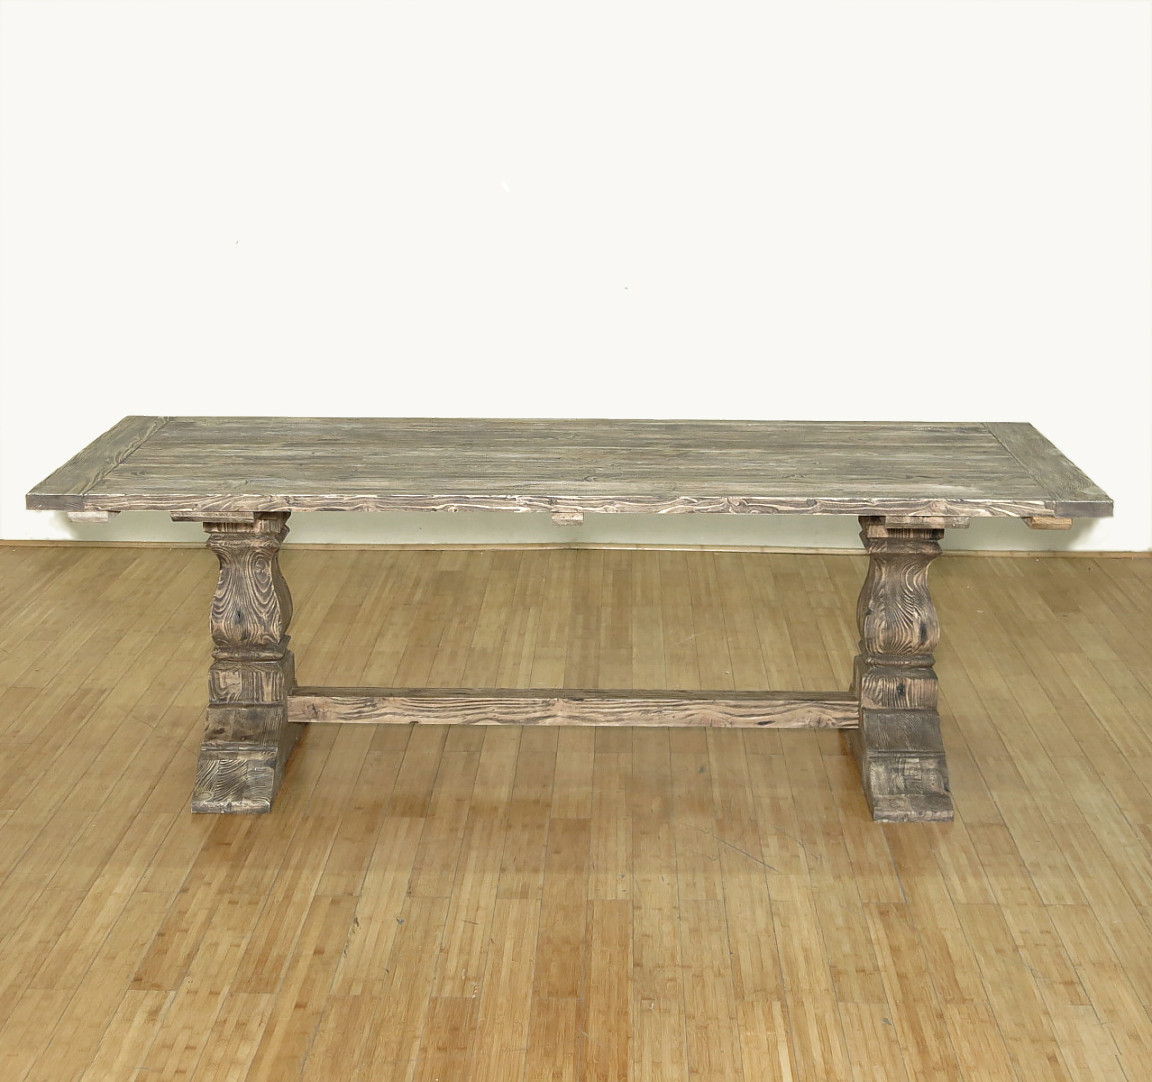 8ft solid wood refectory rectangular double pedestal